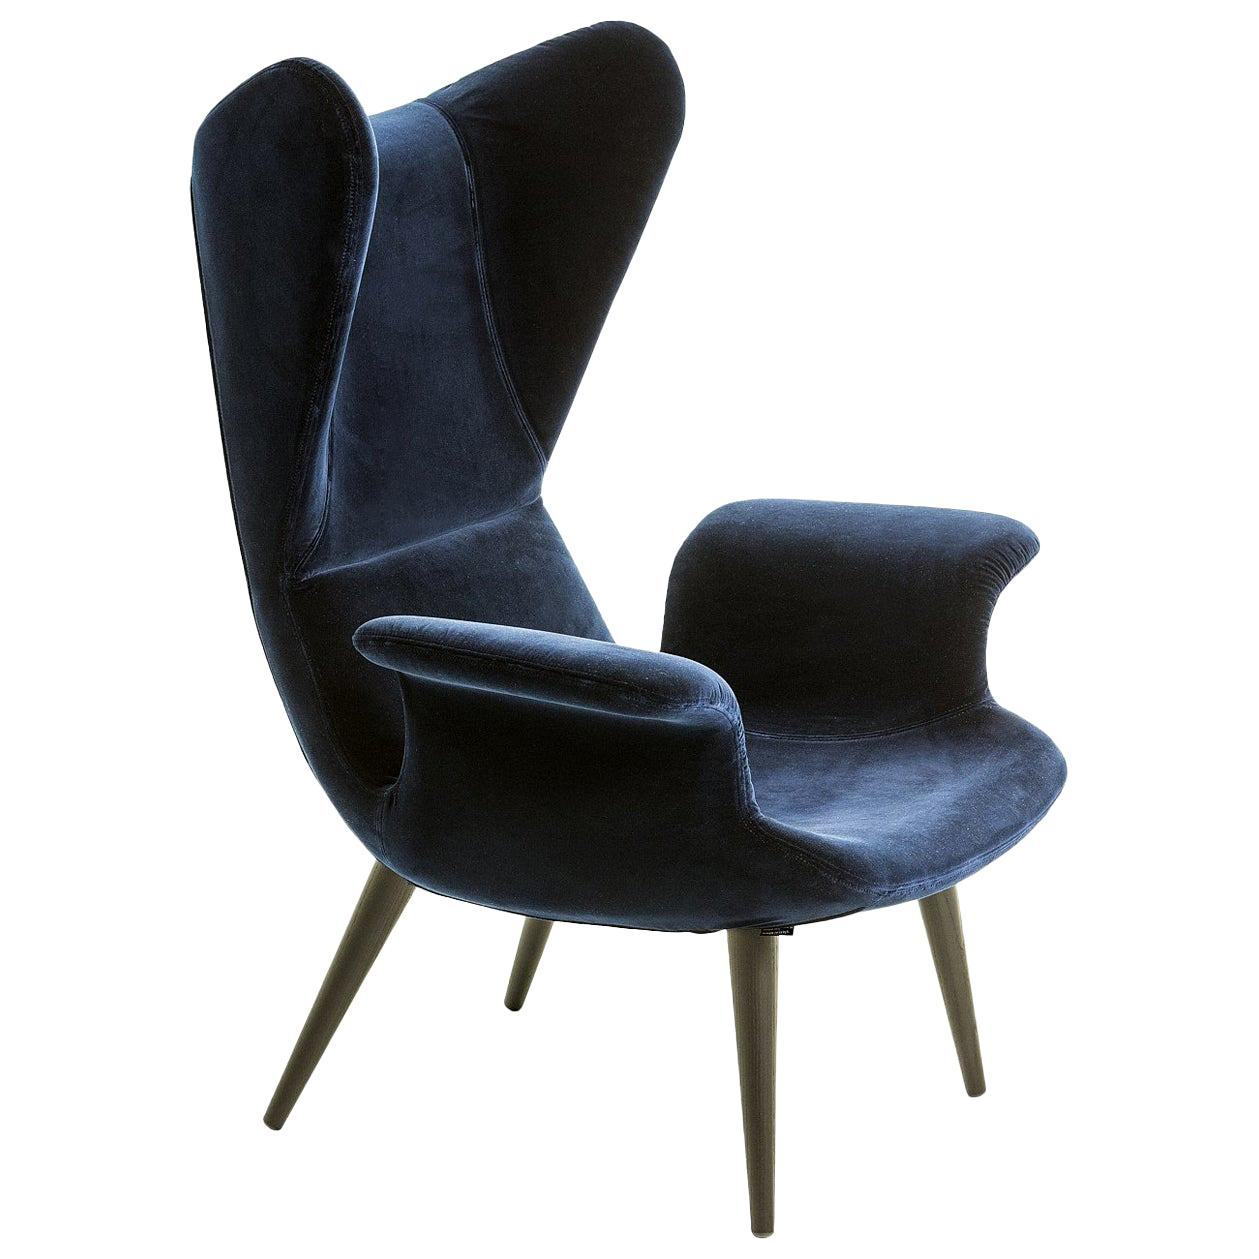 """""""Longwave"""" Fabric or Leather High Back Armchair by Moroso for Diesel"""